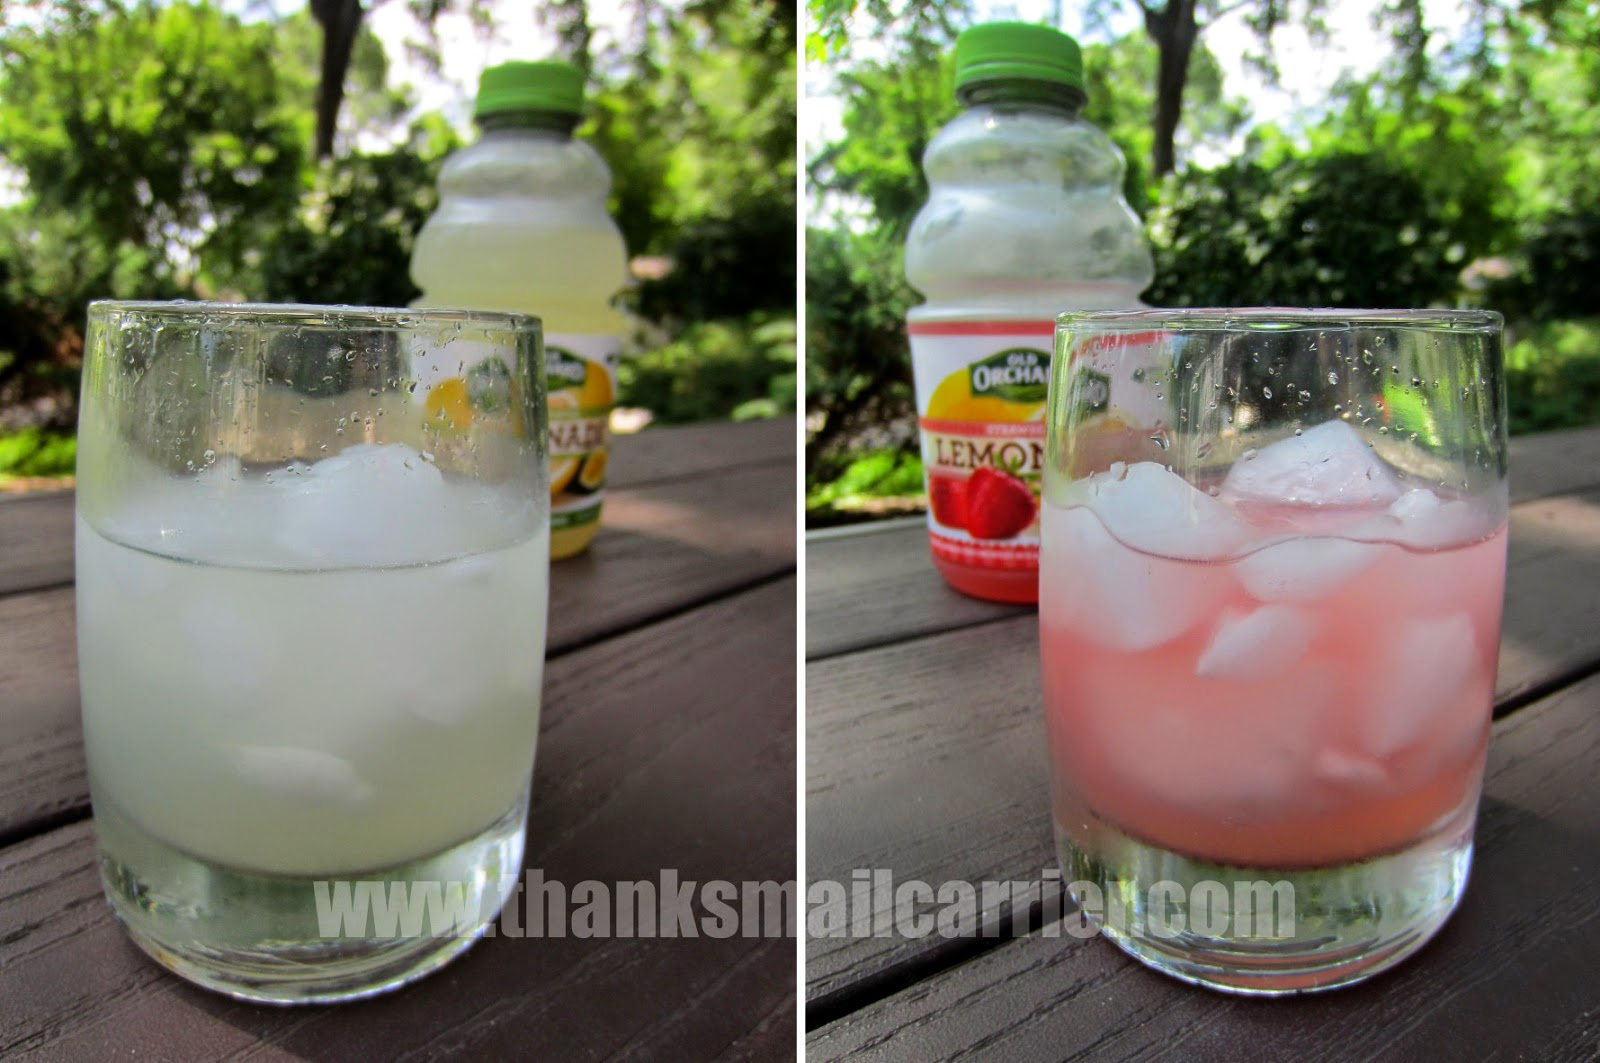 Old Orchard lemonade review